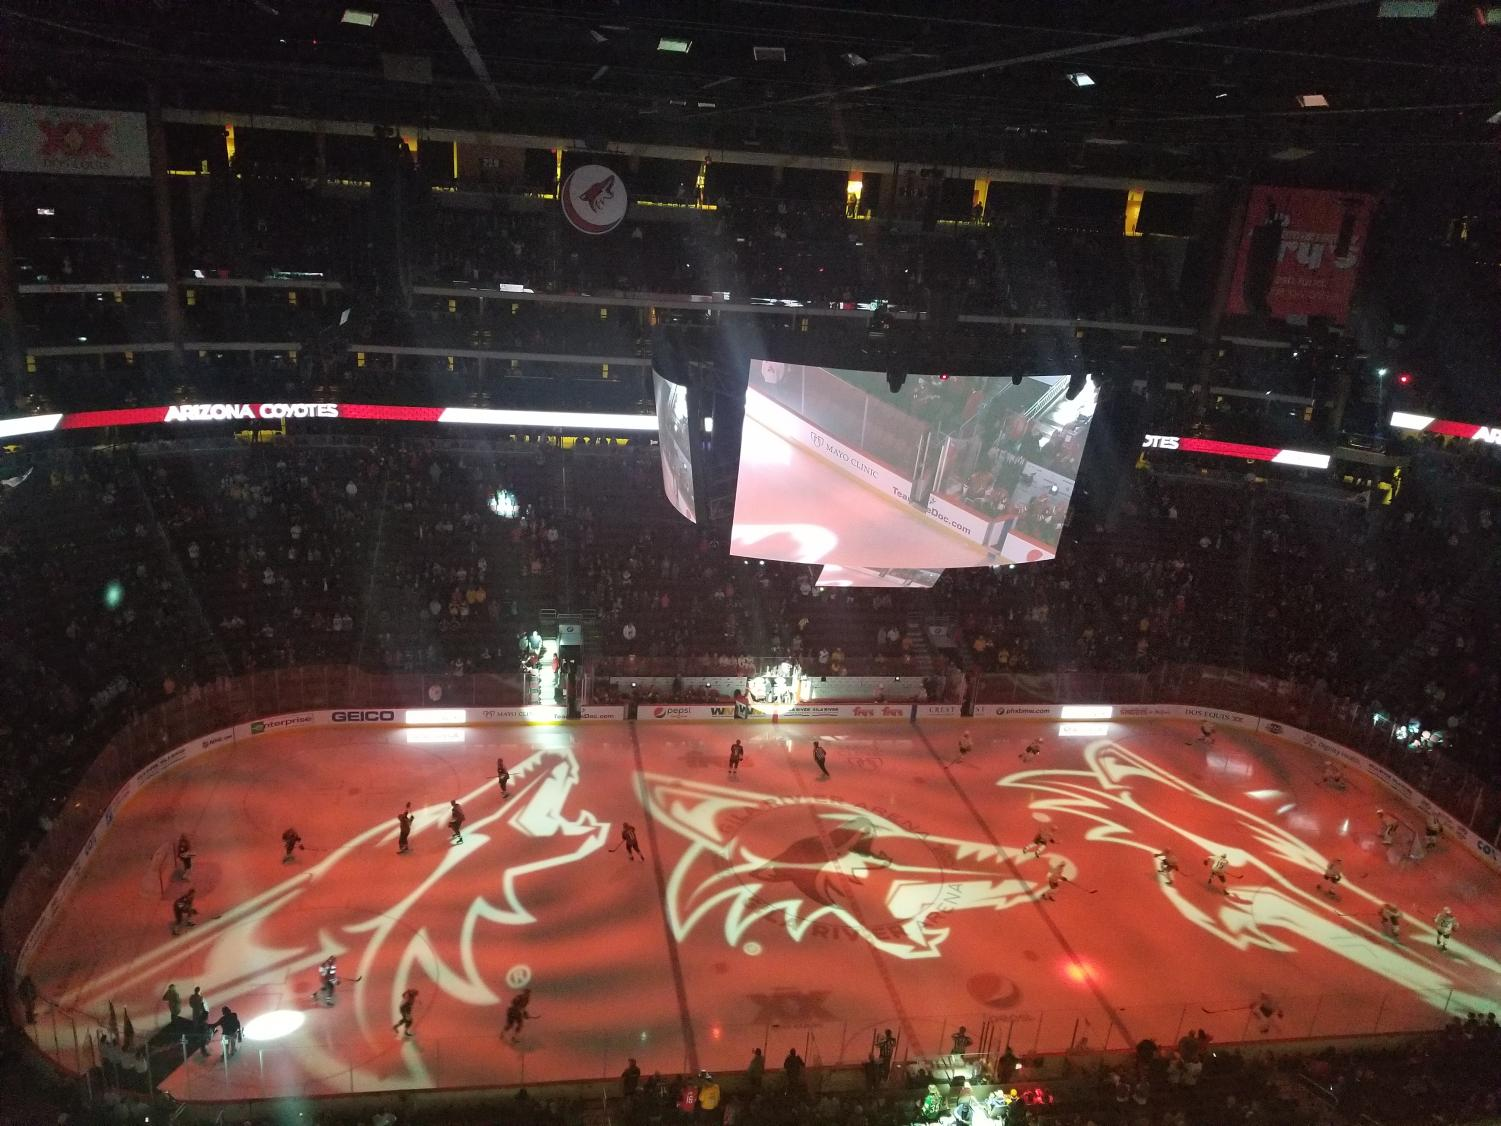 The Coyotes and Predators hit the ice before the game.